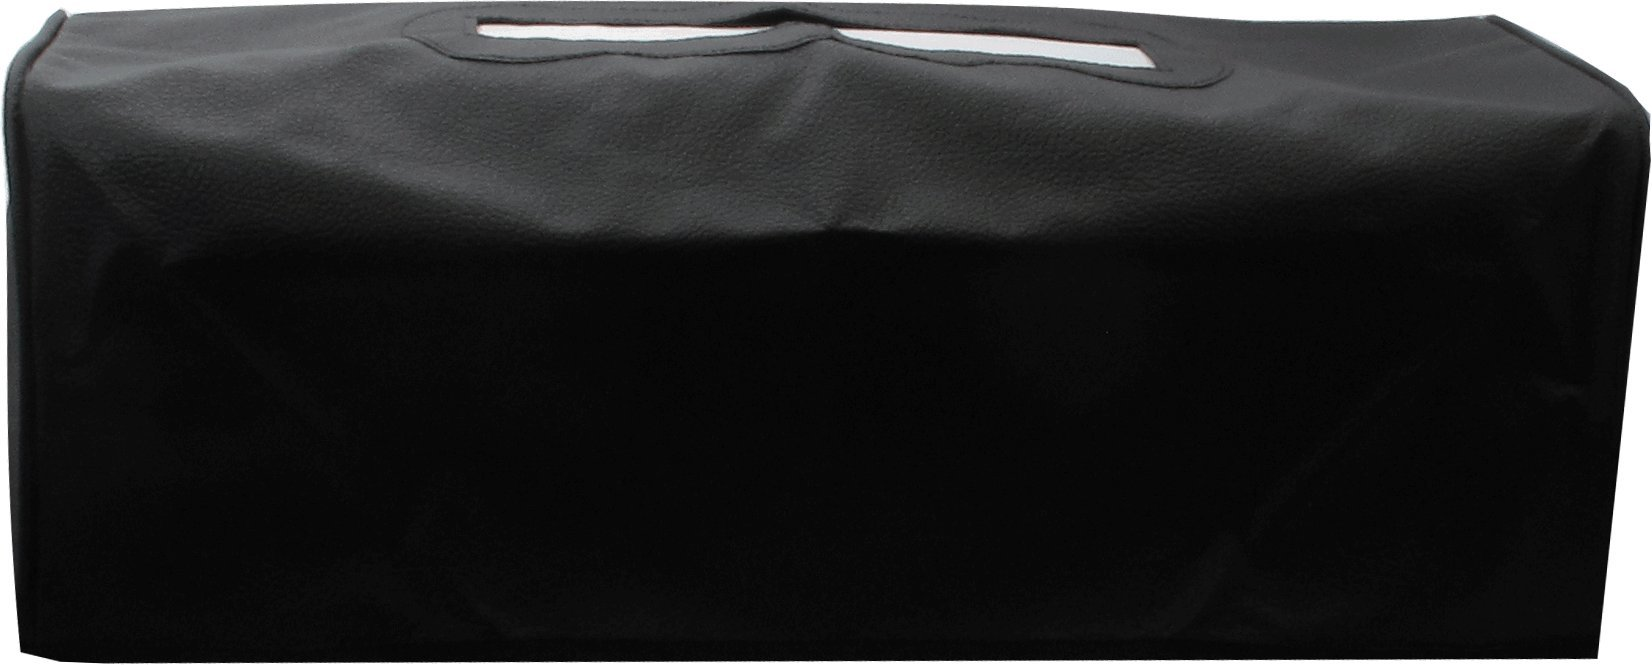 Fender Replacement Amp Cover For Standard Bassman Head